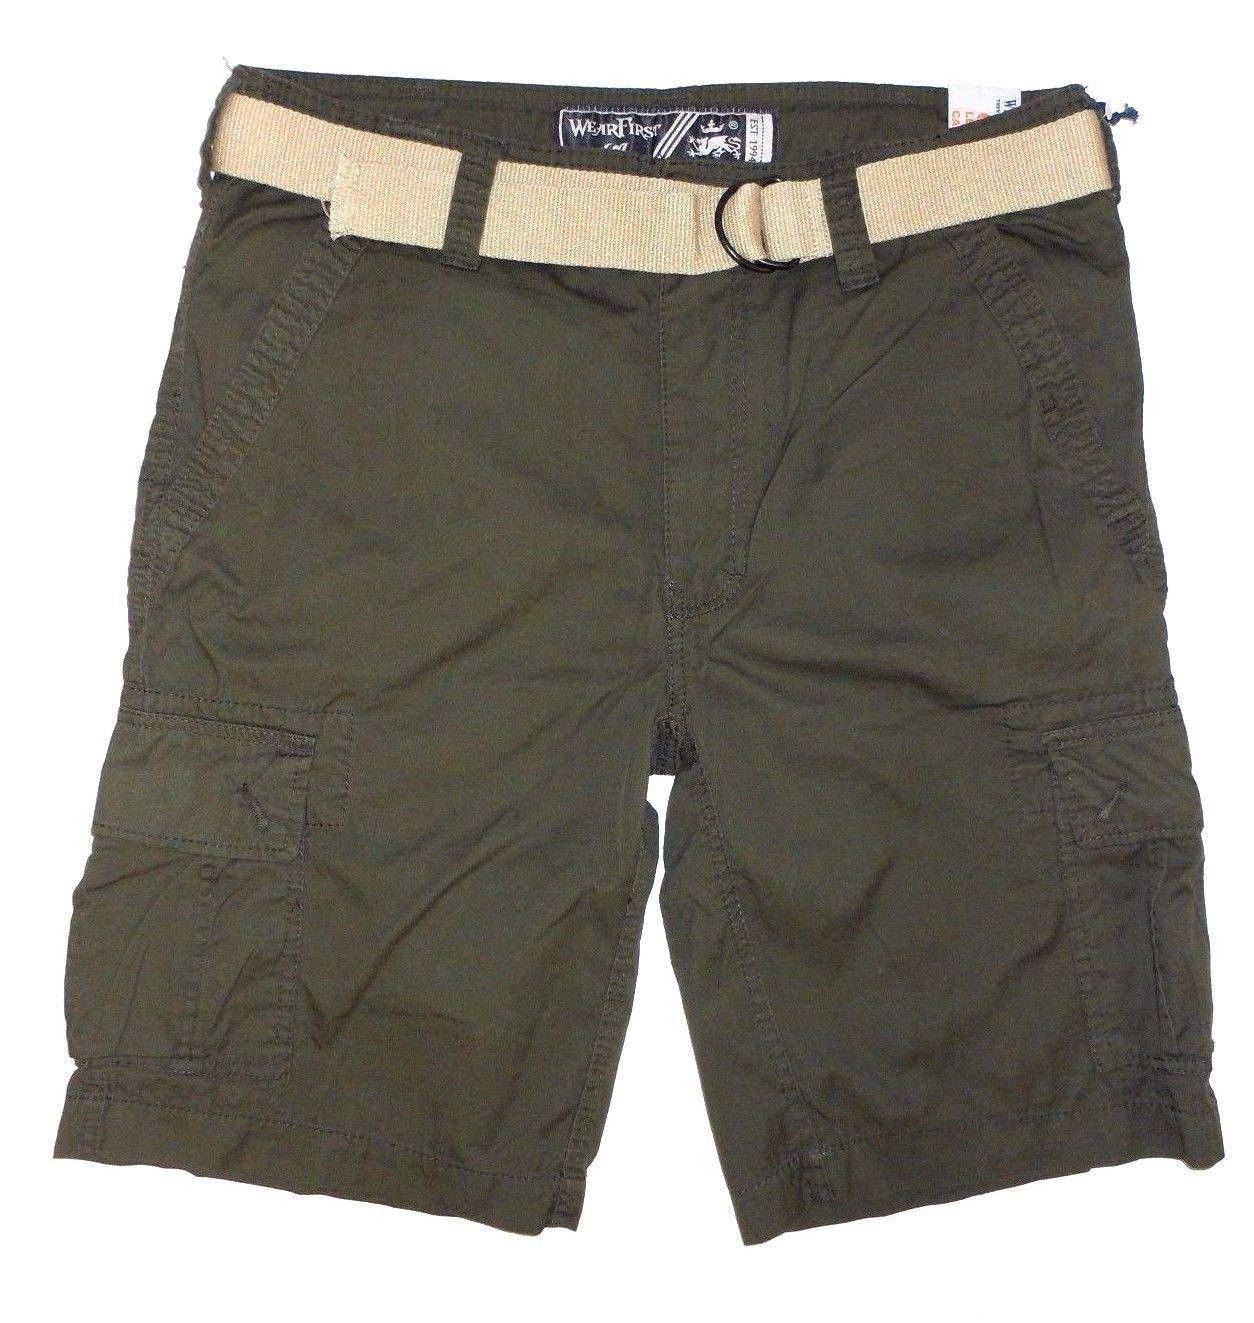 Primary image for Wear First Men's 685 LEGACY Belted Cargo Casual Shorts Olive Stone Sz-34